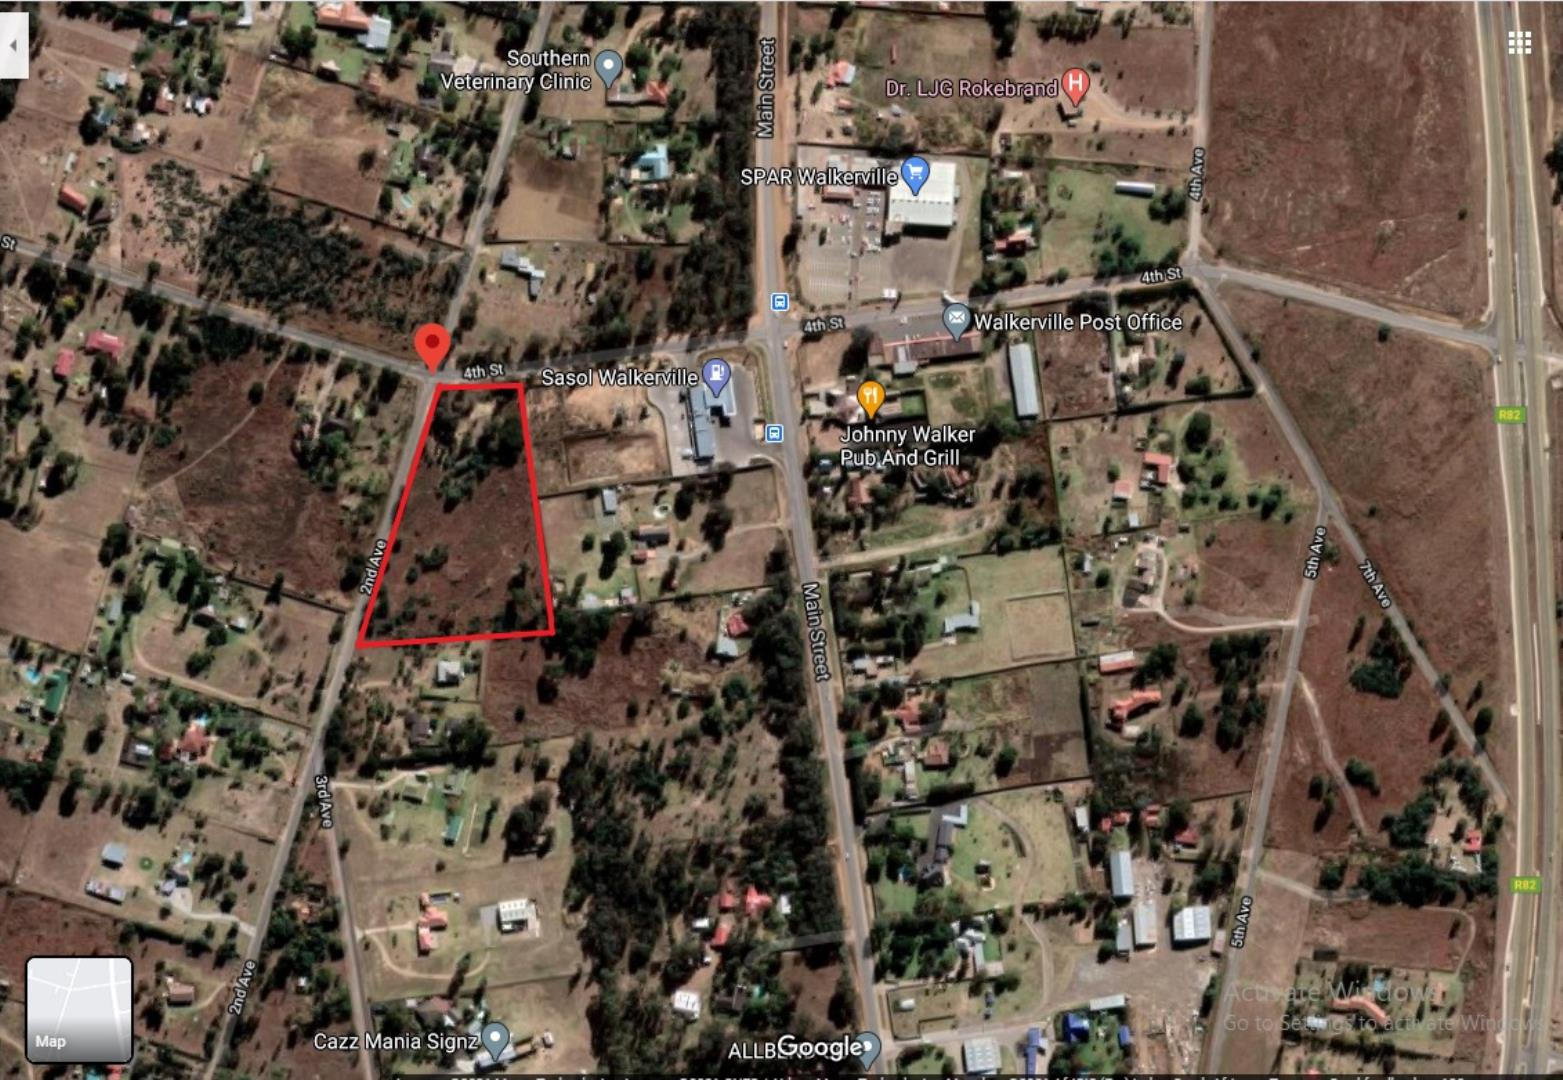 Vacant Land for Sale in Walker Fruit Farms, Walkerville - Gauteng